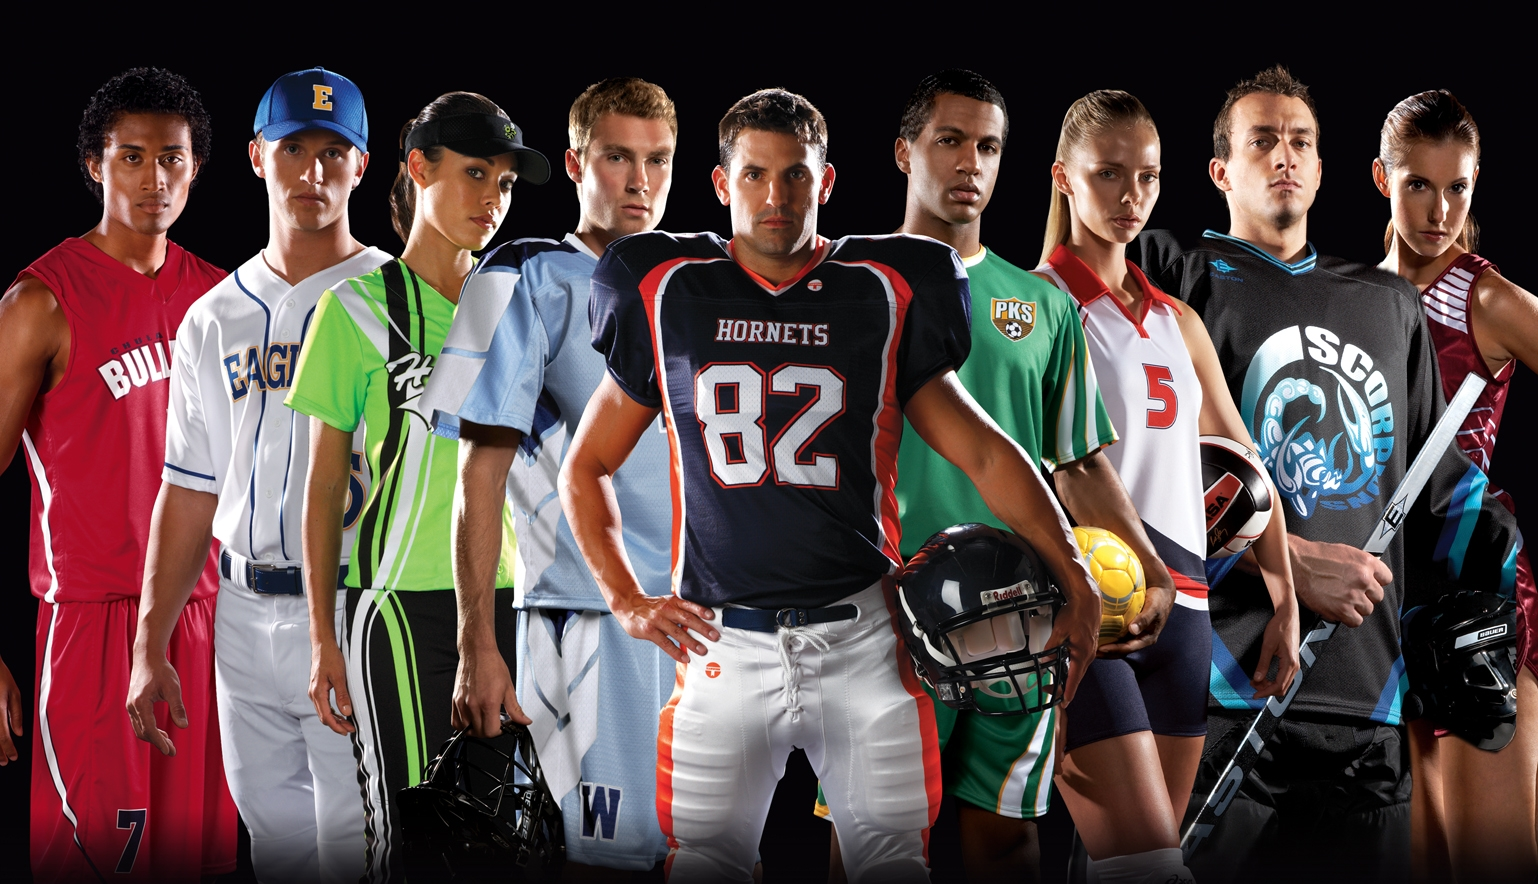 sports team sportswear uniforms teams sport athlete athletes apparel schools